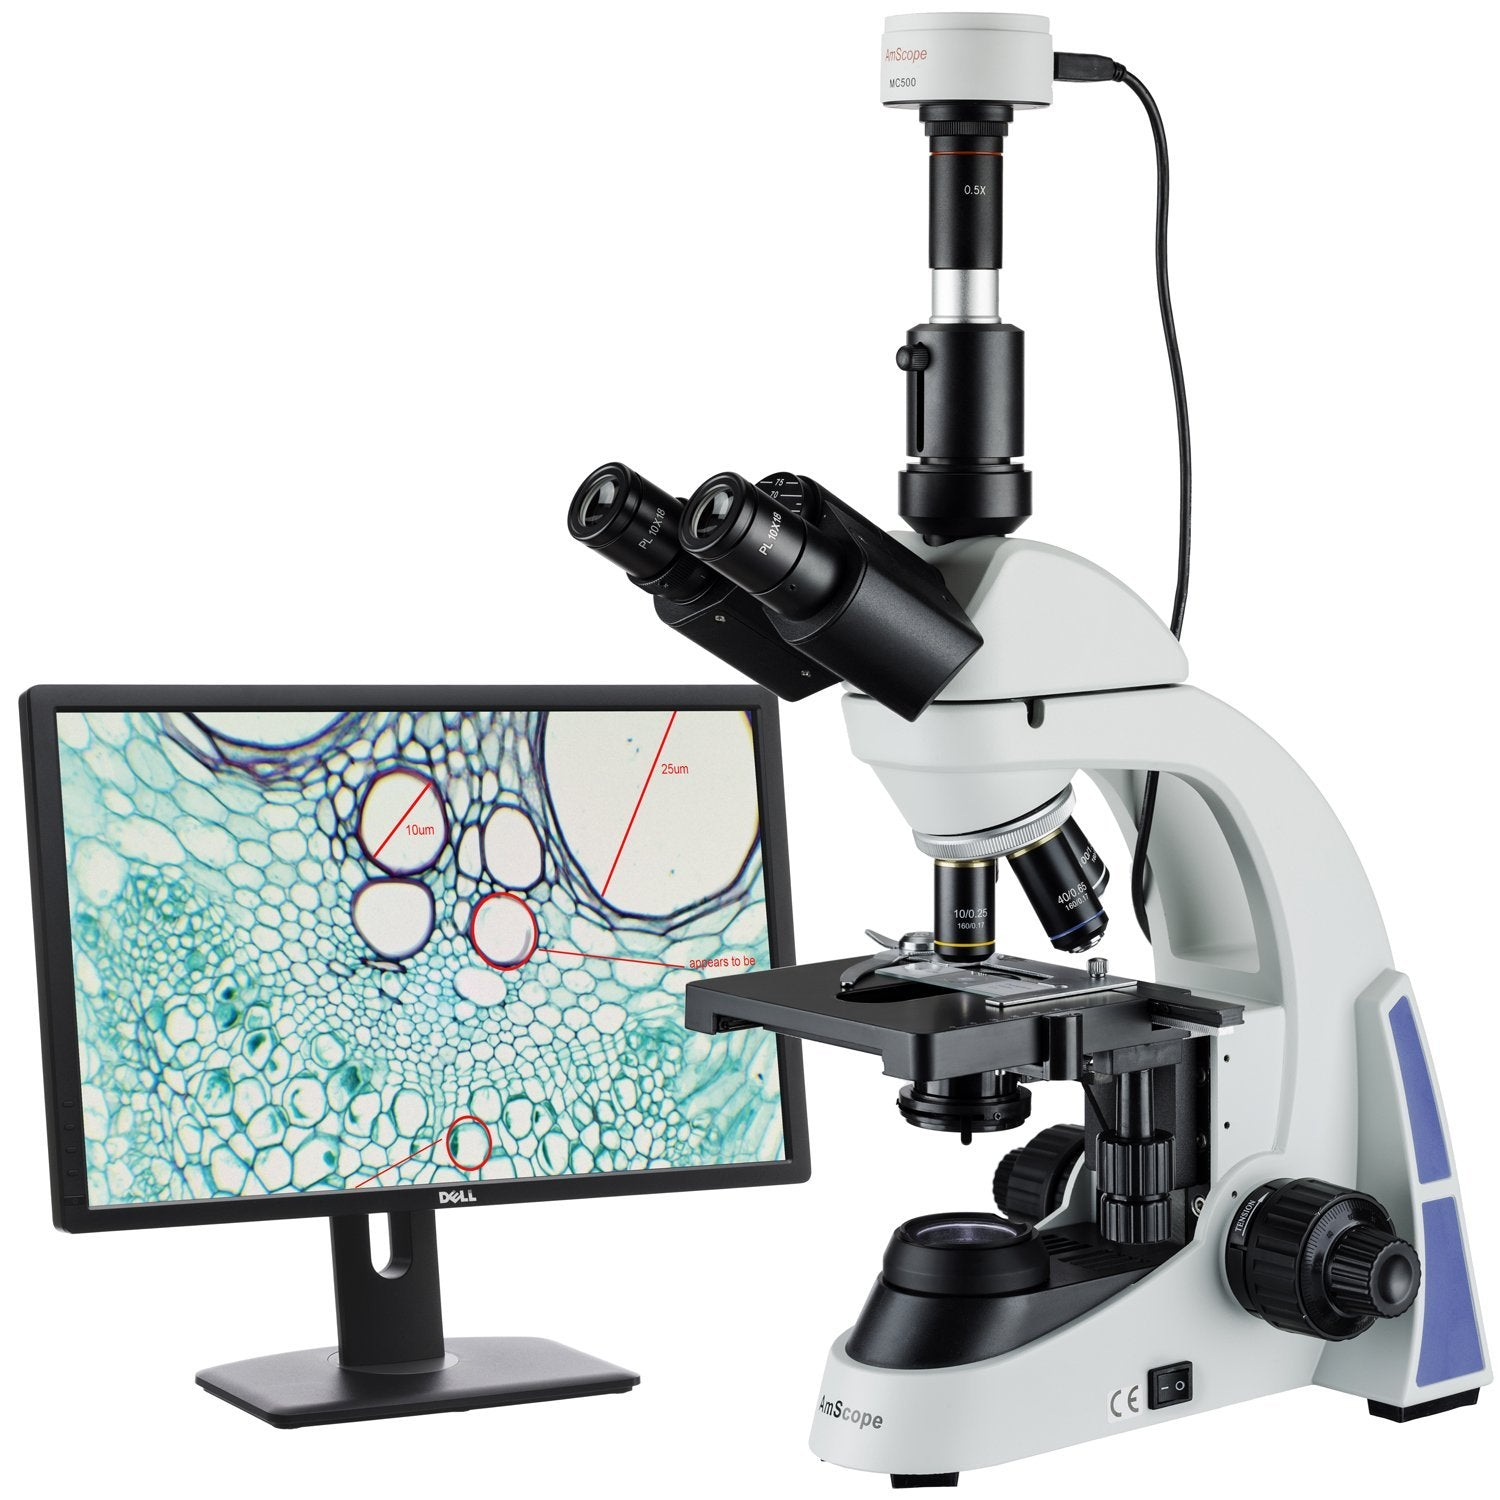 AmScope 40X-2000X LED Biological Trinocular Compound Microscope with 5MP Camera